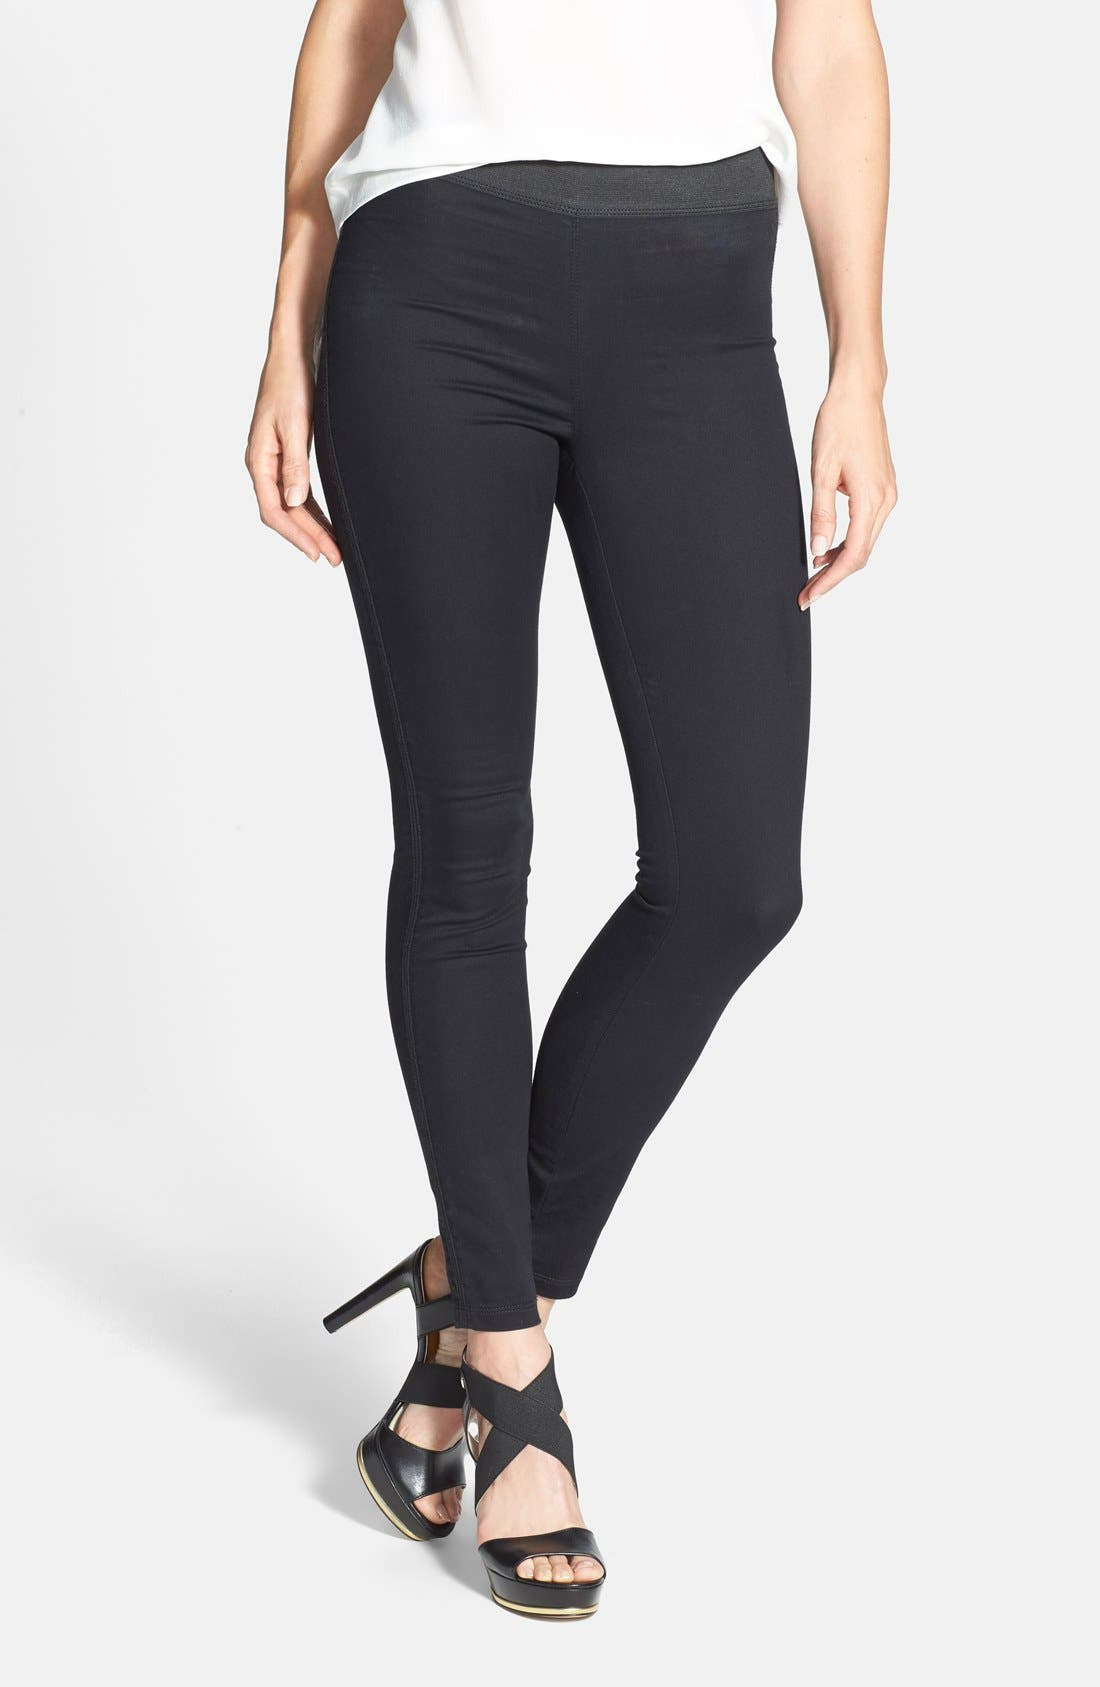 Main Image - Two by Vince Camuto Back Seam Denim Leggings